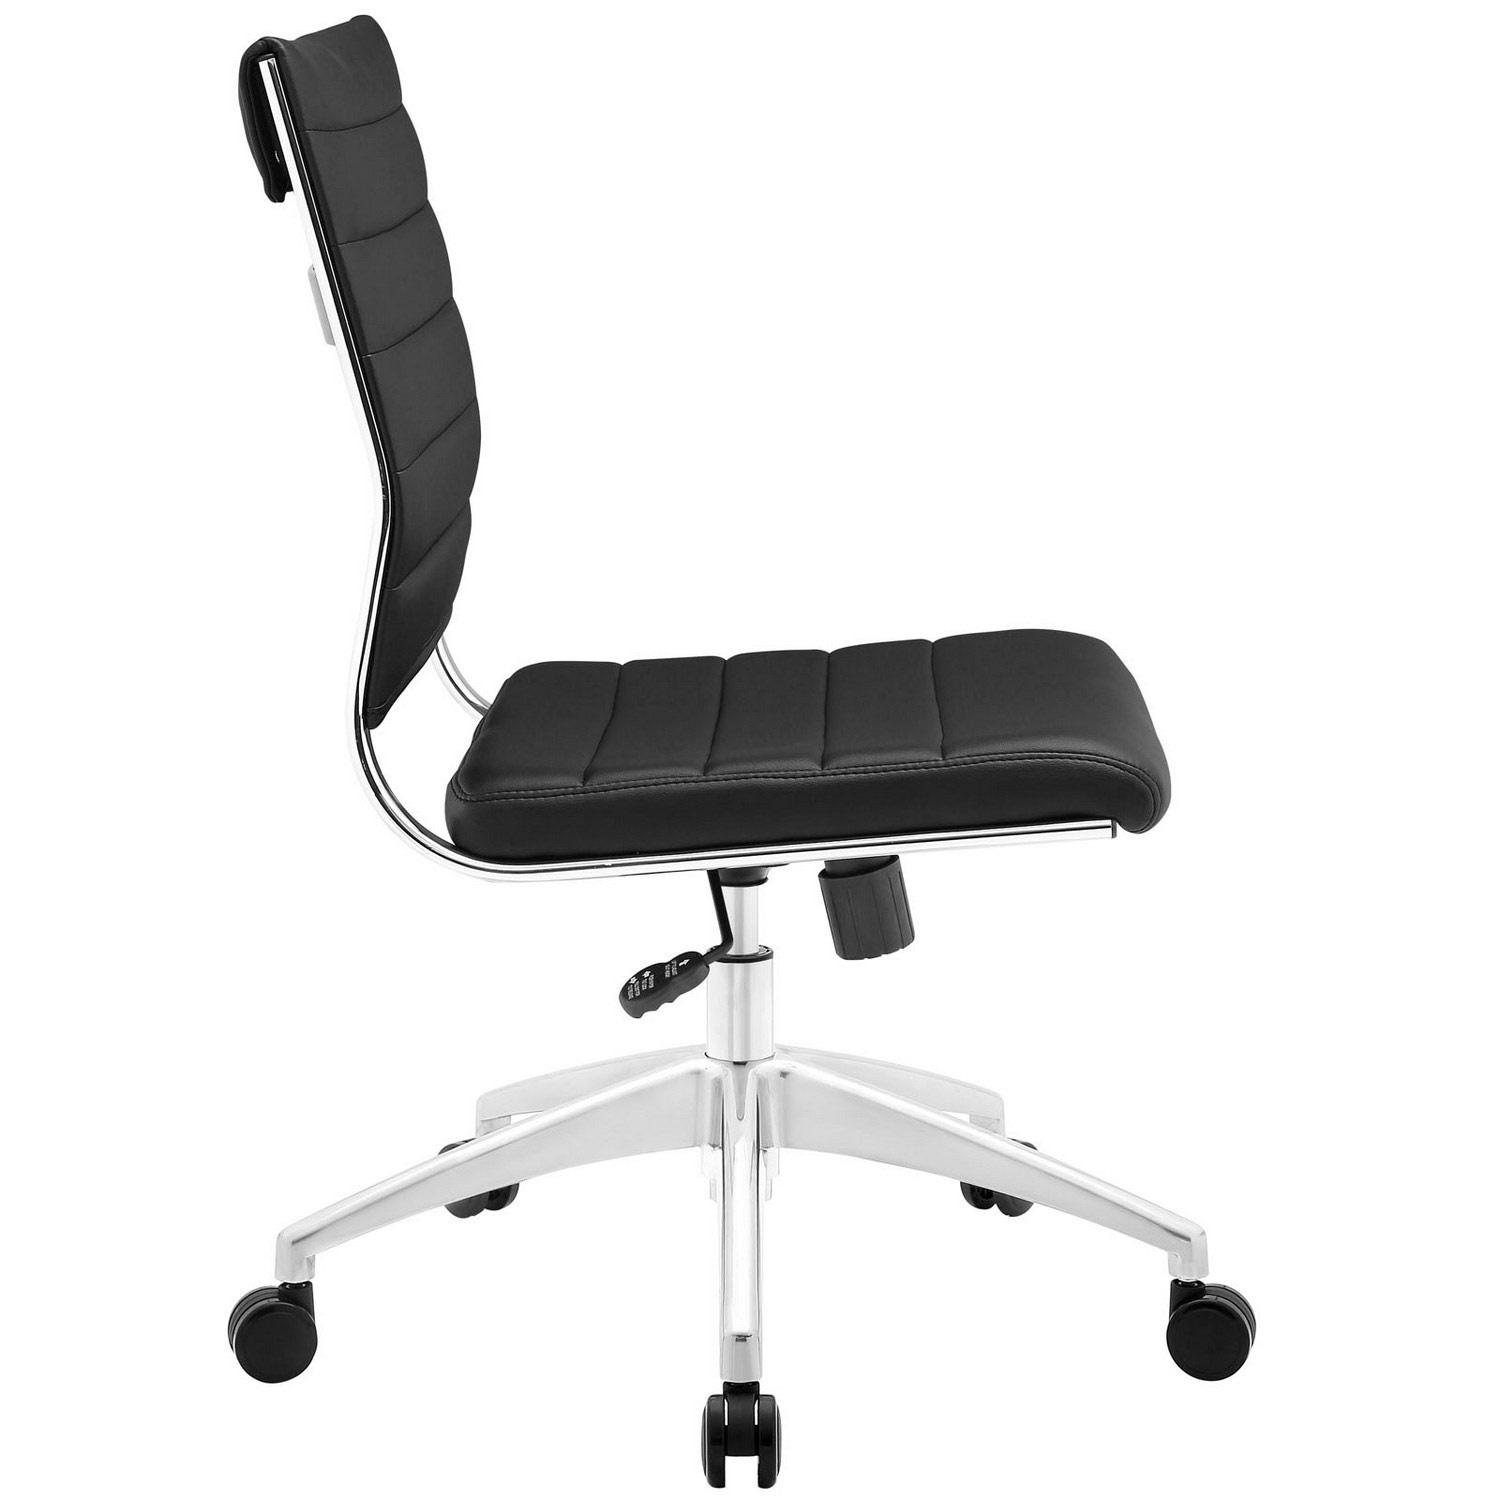 Modway Jive Armless Mid Back Office Chair - Black